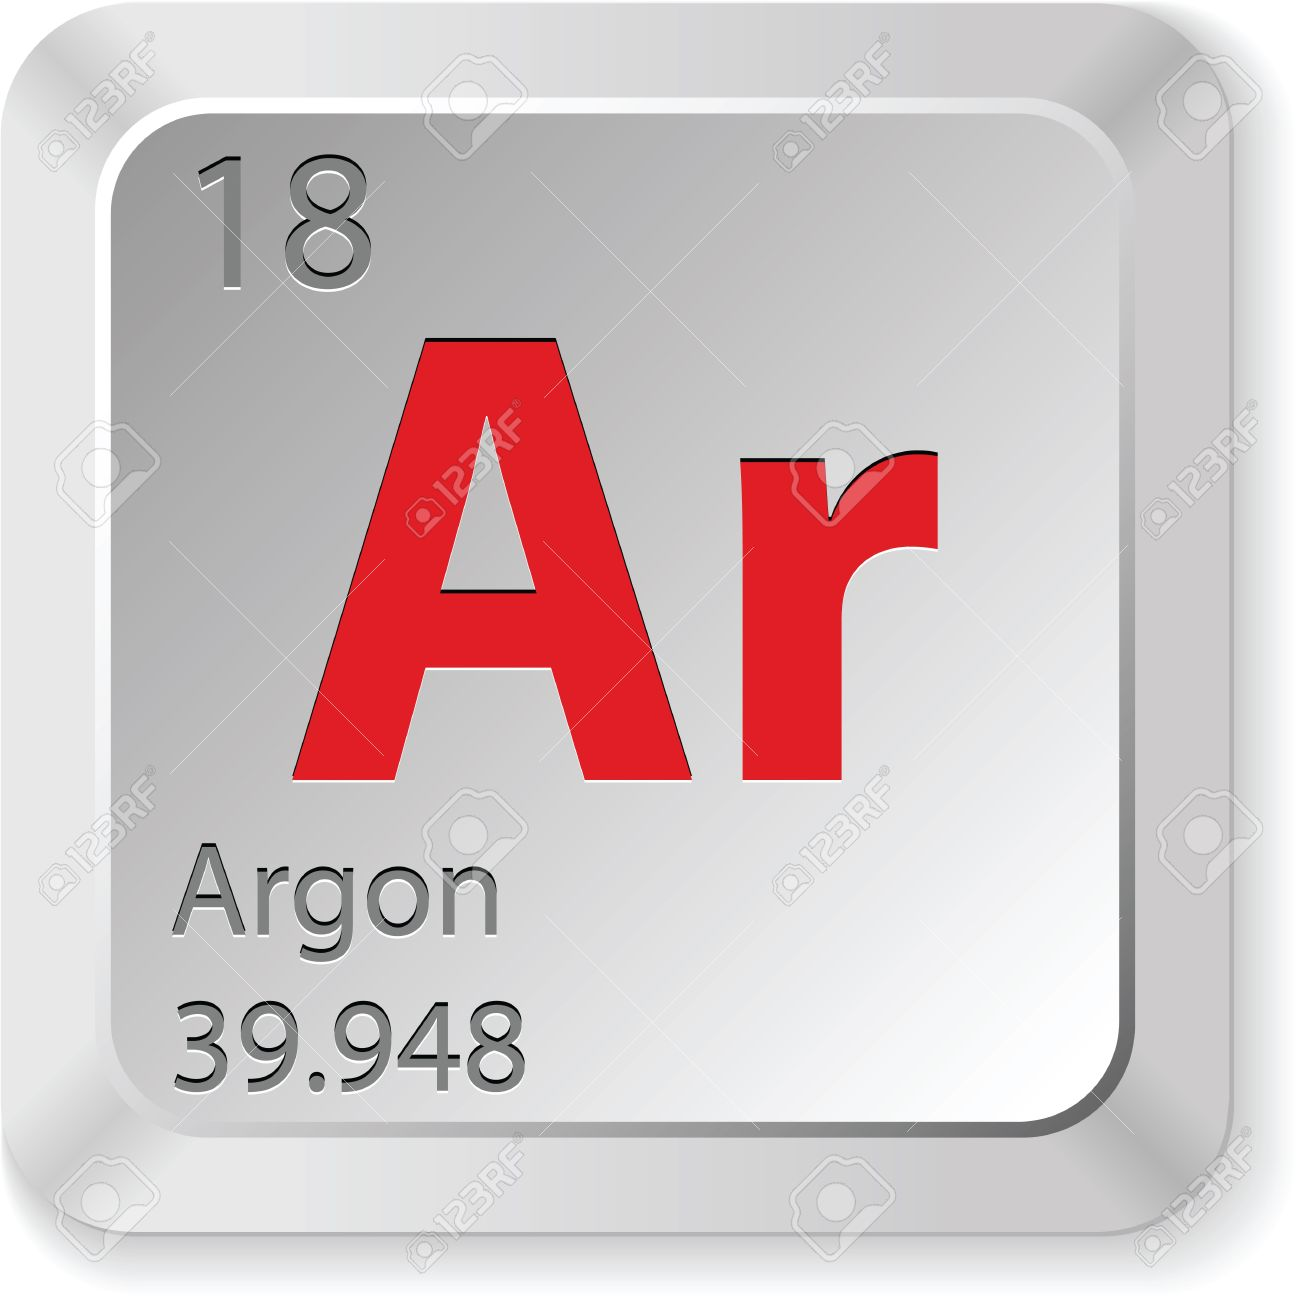 135 Argon Stock Illustrations, Cliparts And Royalty Free Argon Vectors.